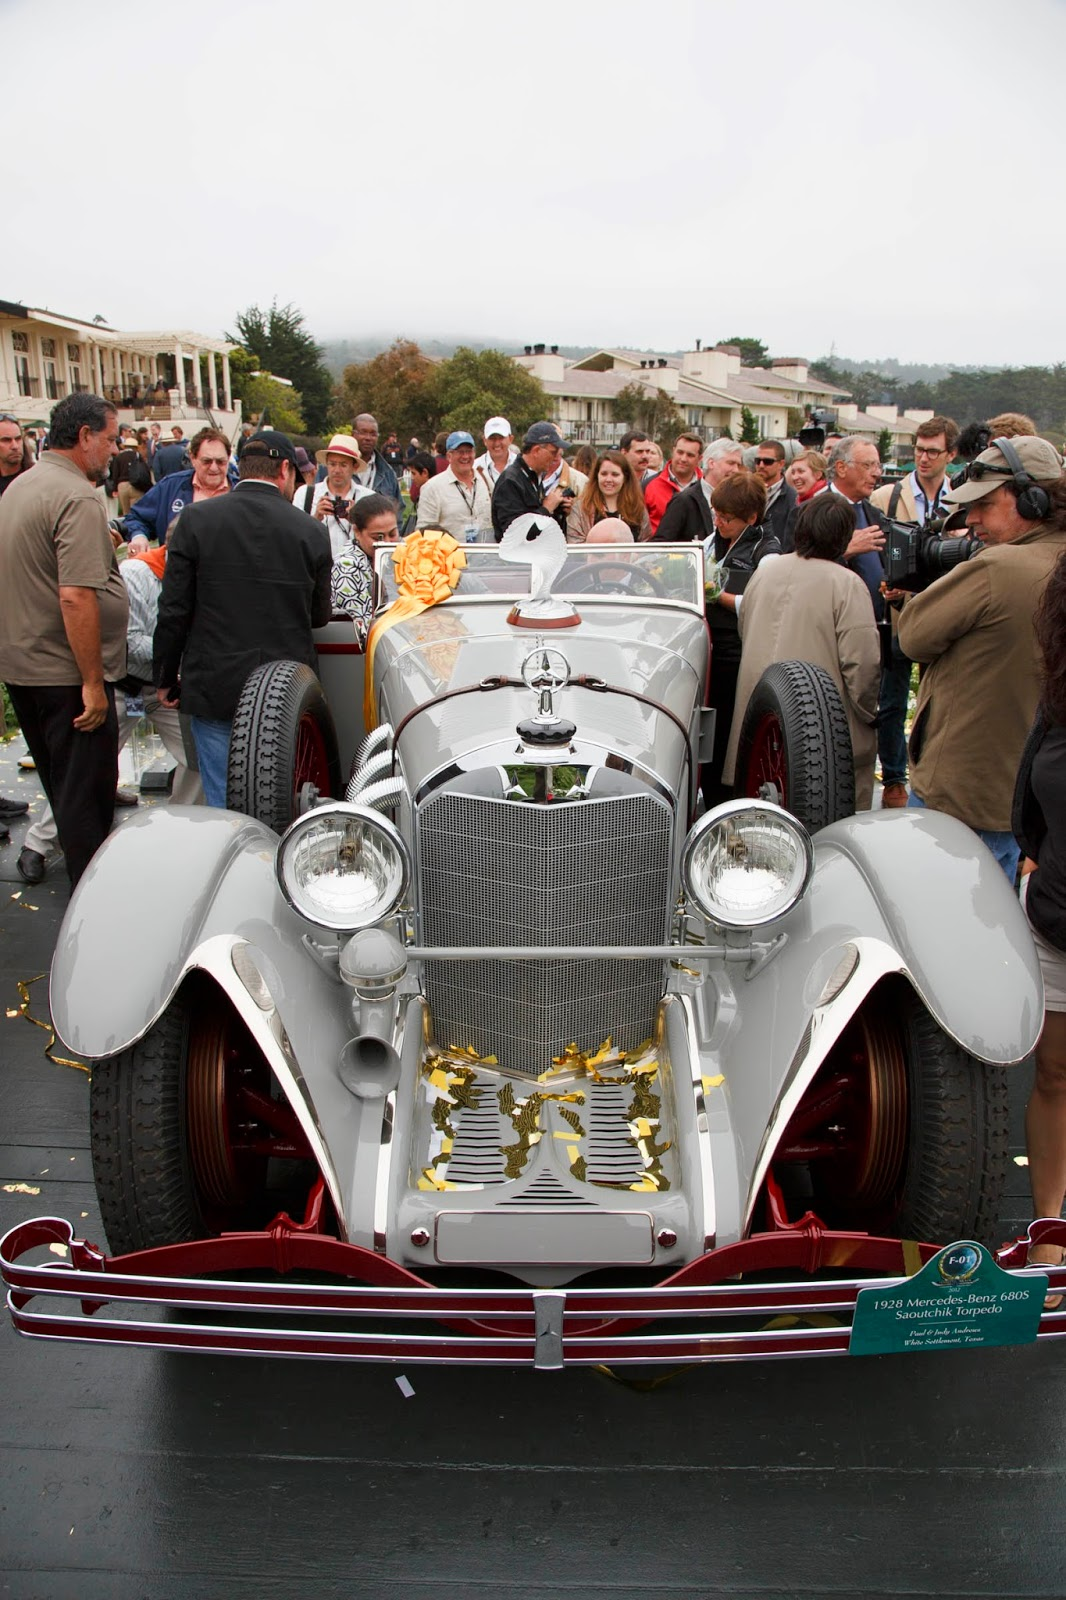 Mercedes-Benz 680S Torpedo Roadster 1928 in auction (4)